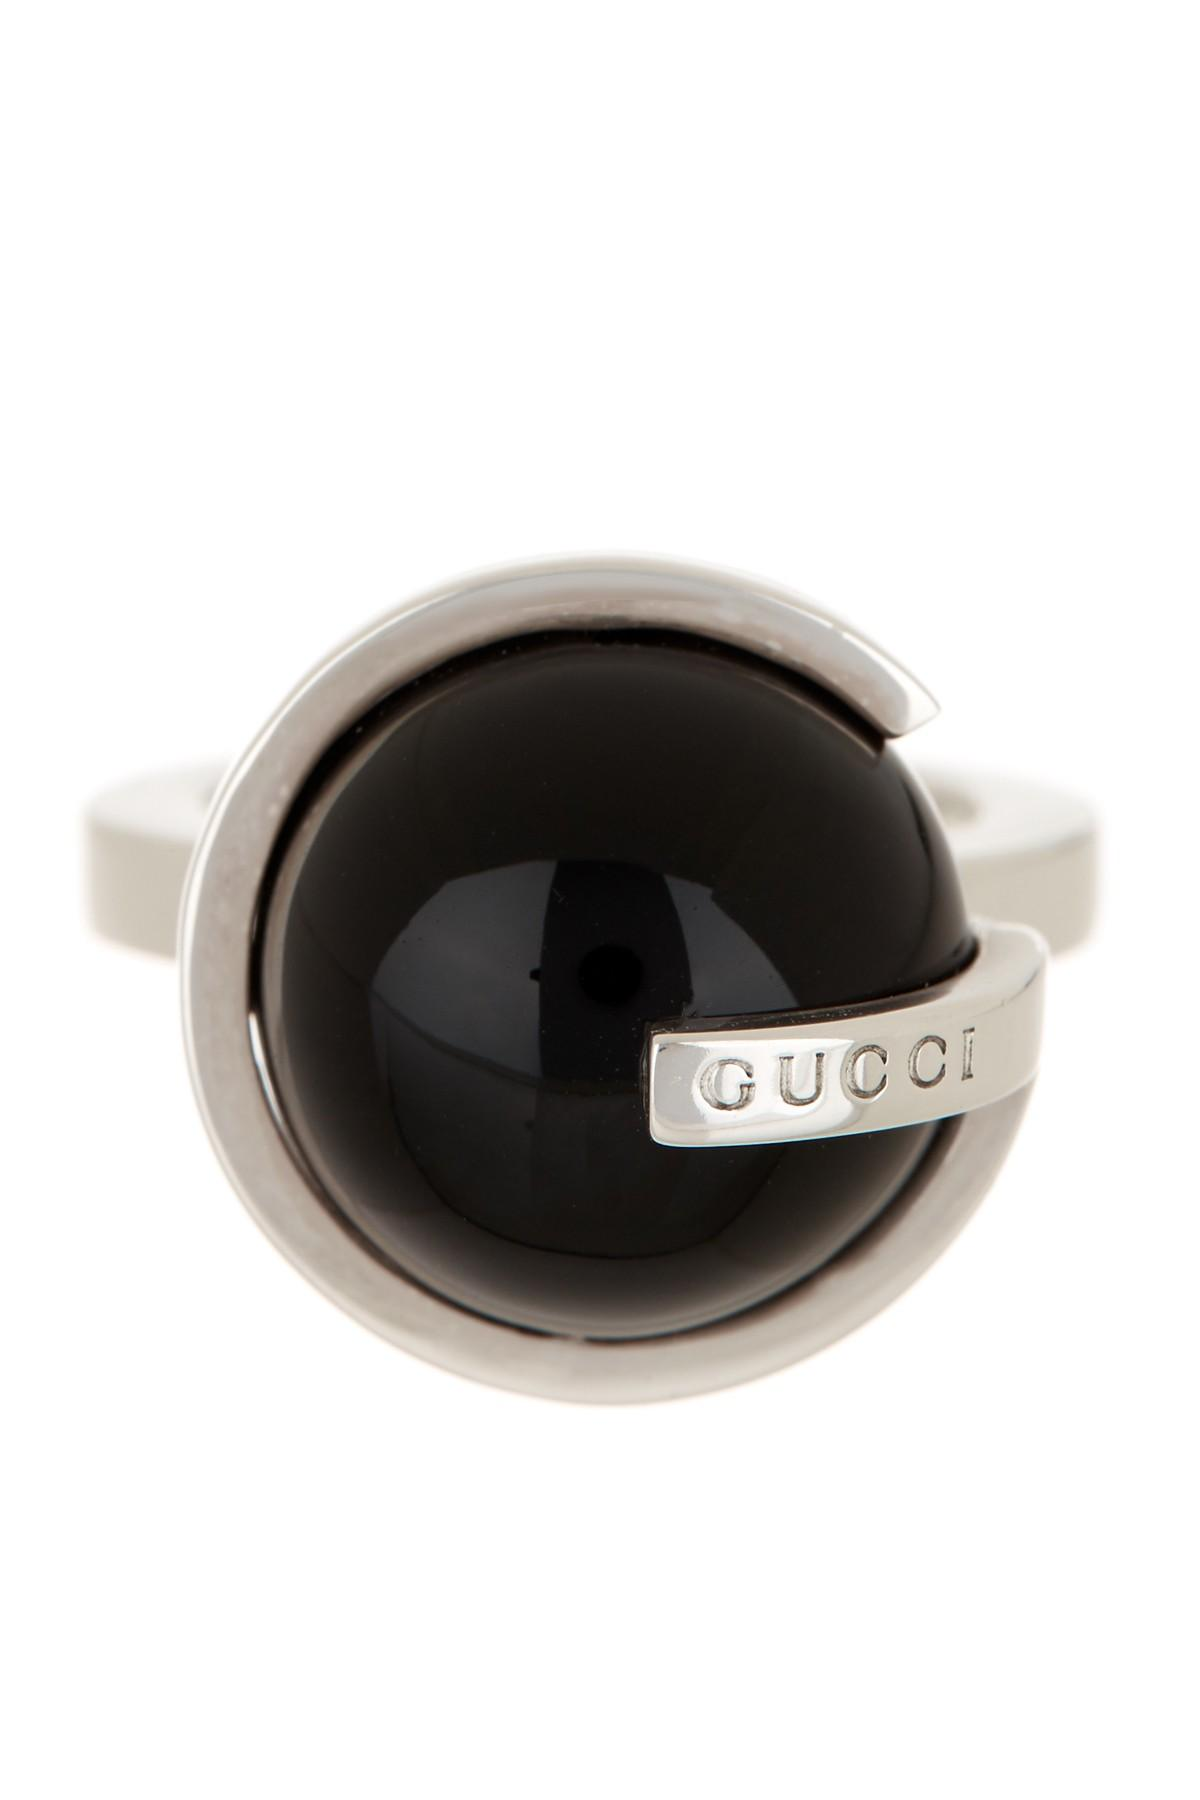 db3ebcbddbc7 Lyst - Gucci Sterling Silver Round Onyx Boule Ring - Size 7.5 in ...